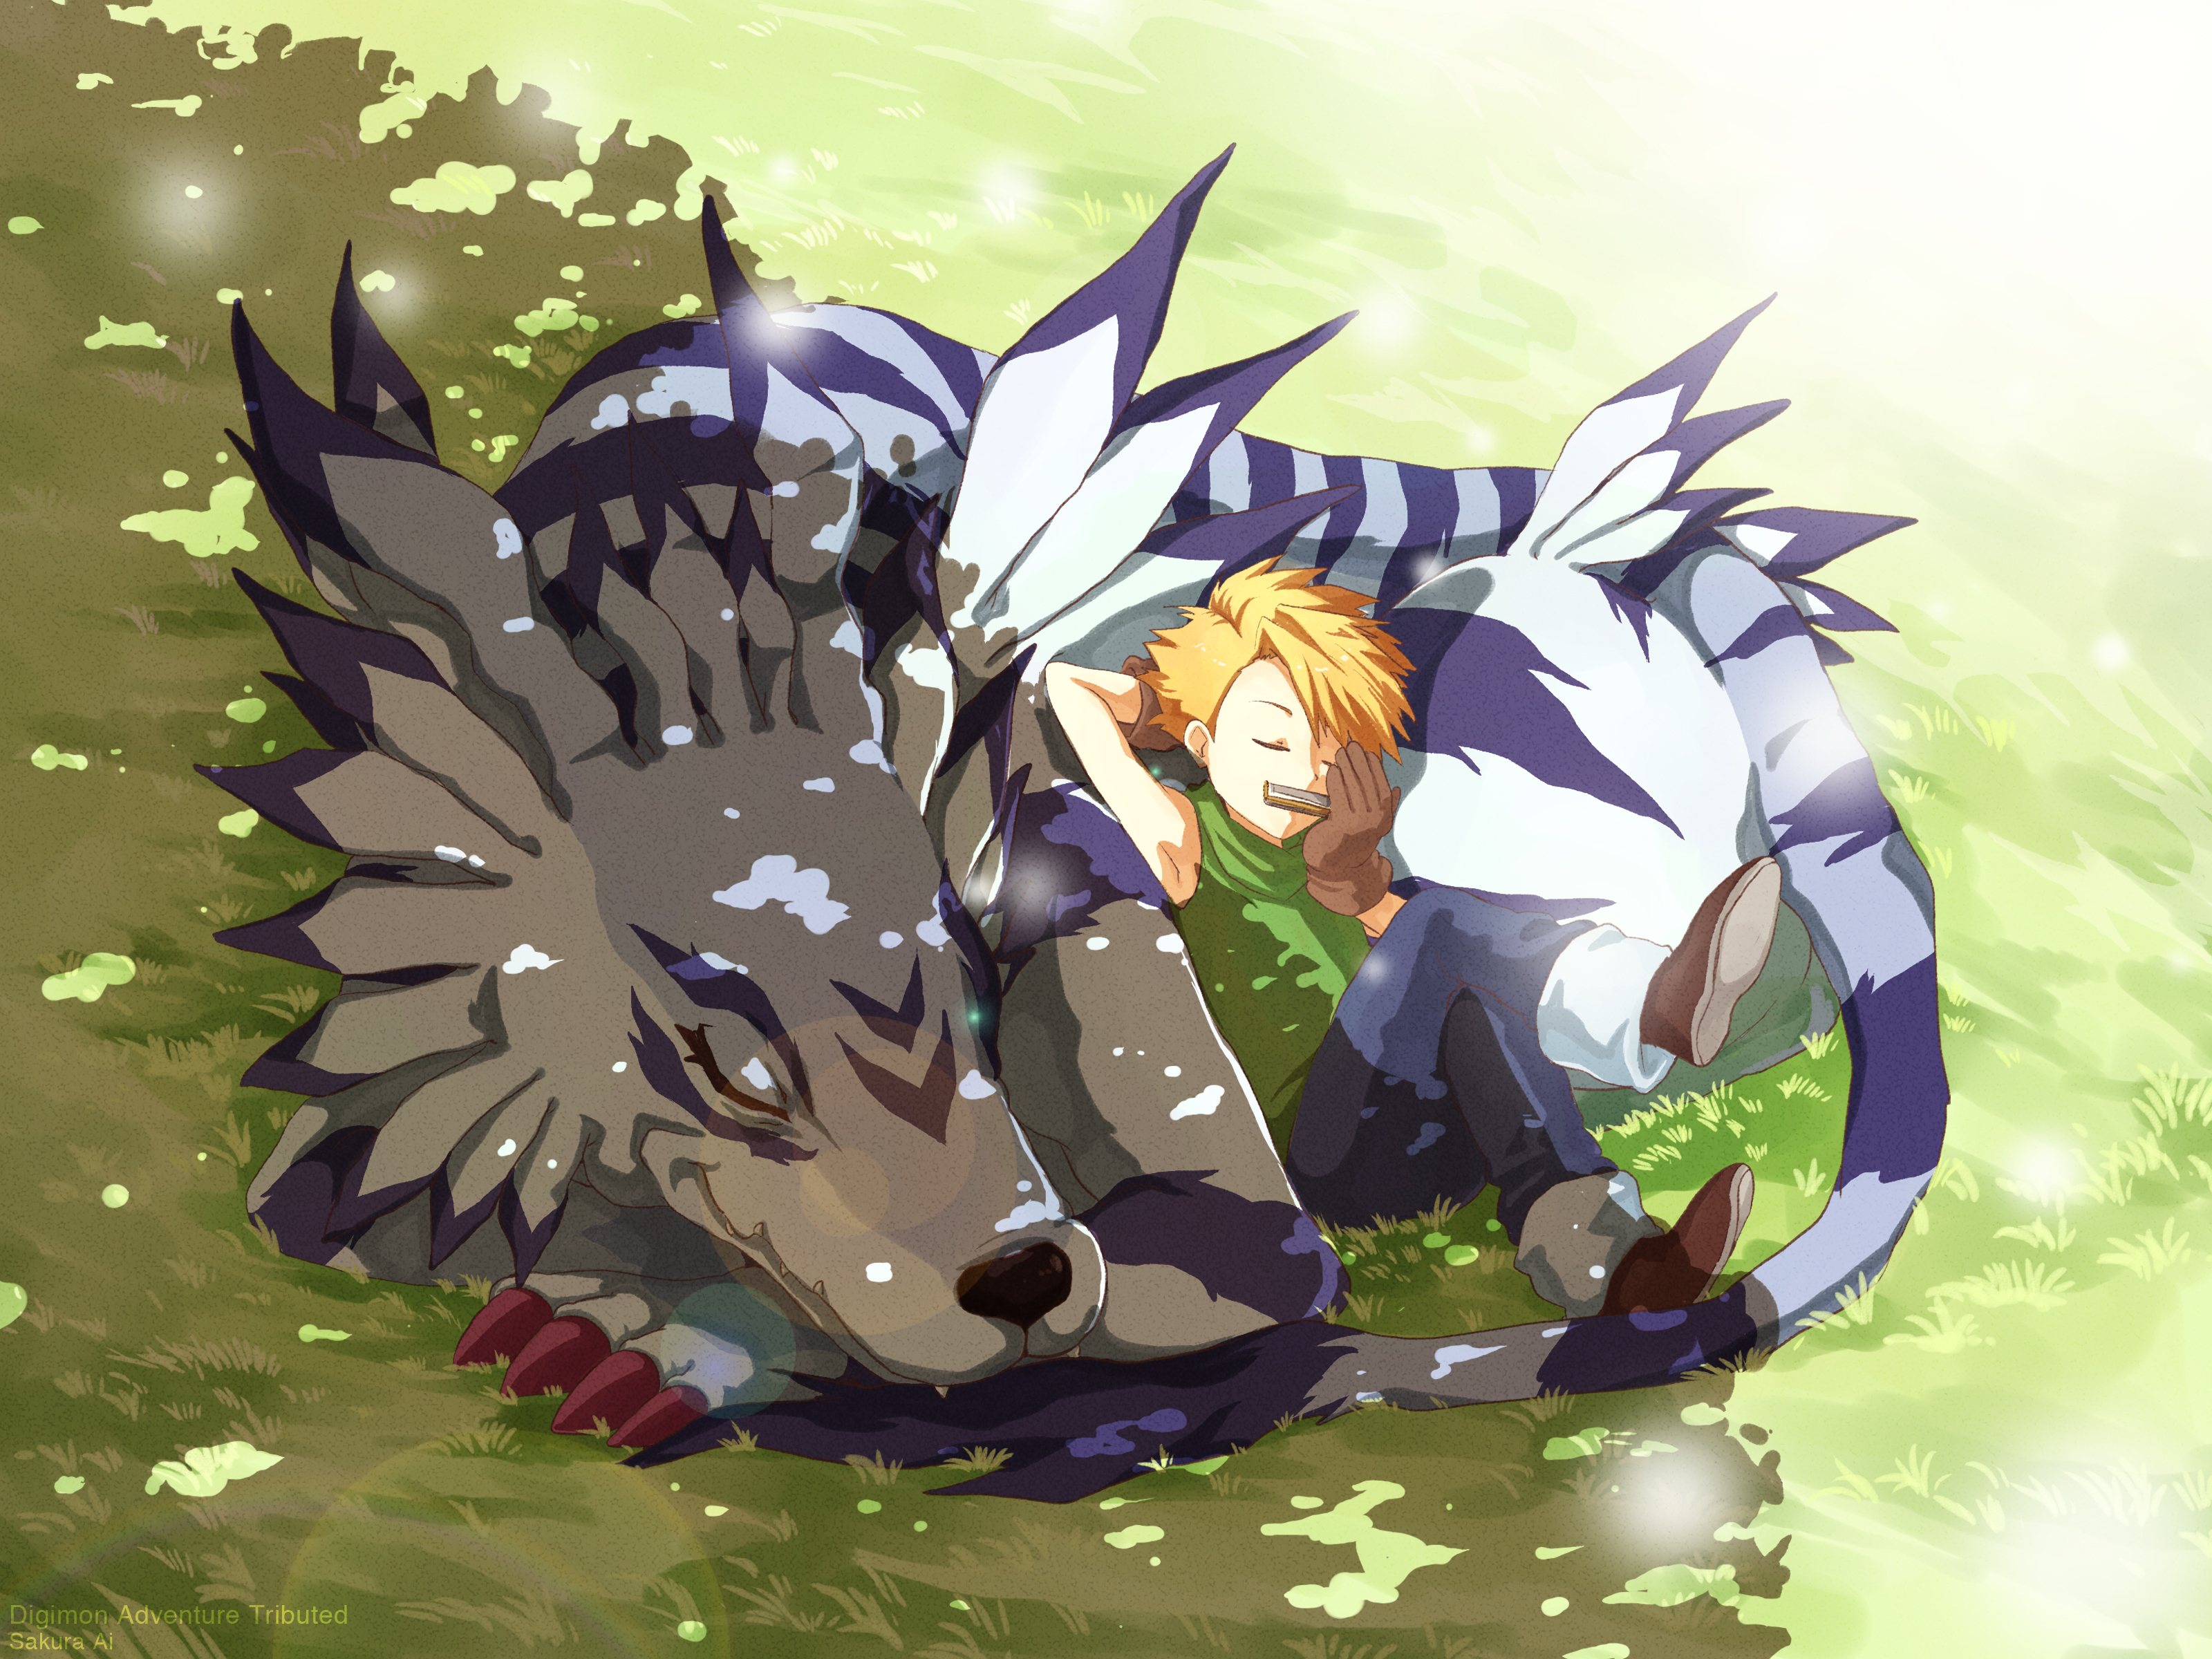 Digimon Adventure Zerochan Anime Image Board